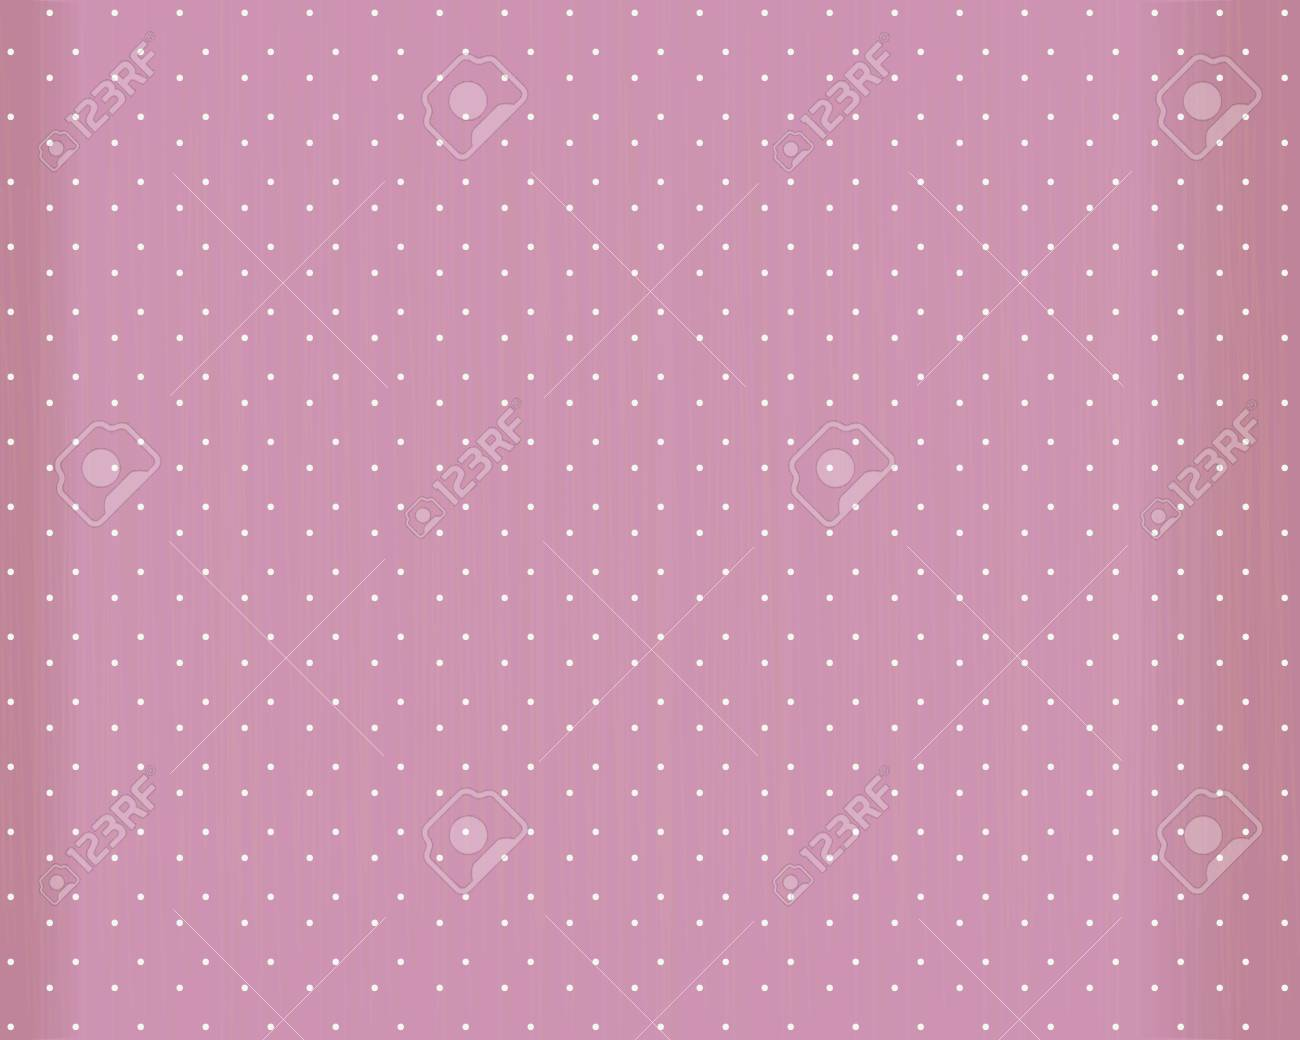 Pink vector background with white round dots, scuffles and edges in the shade. - 126752128